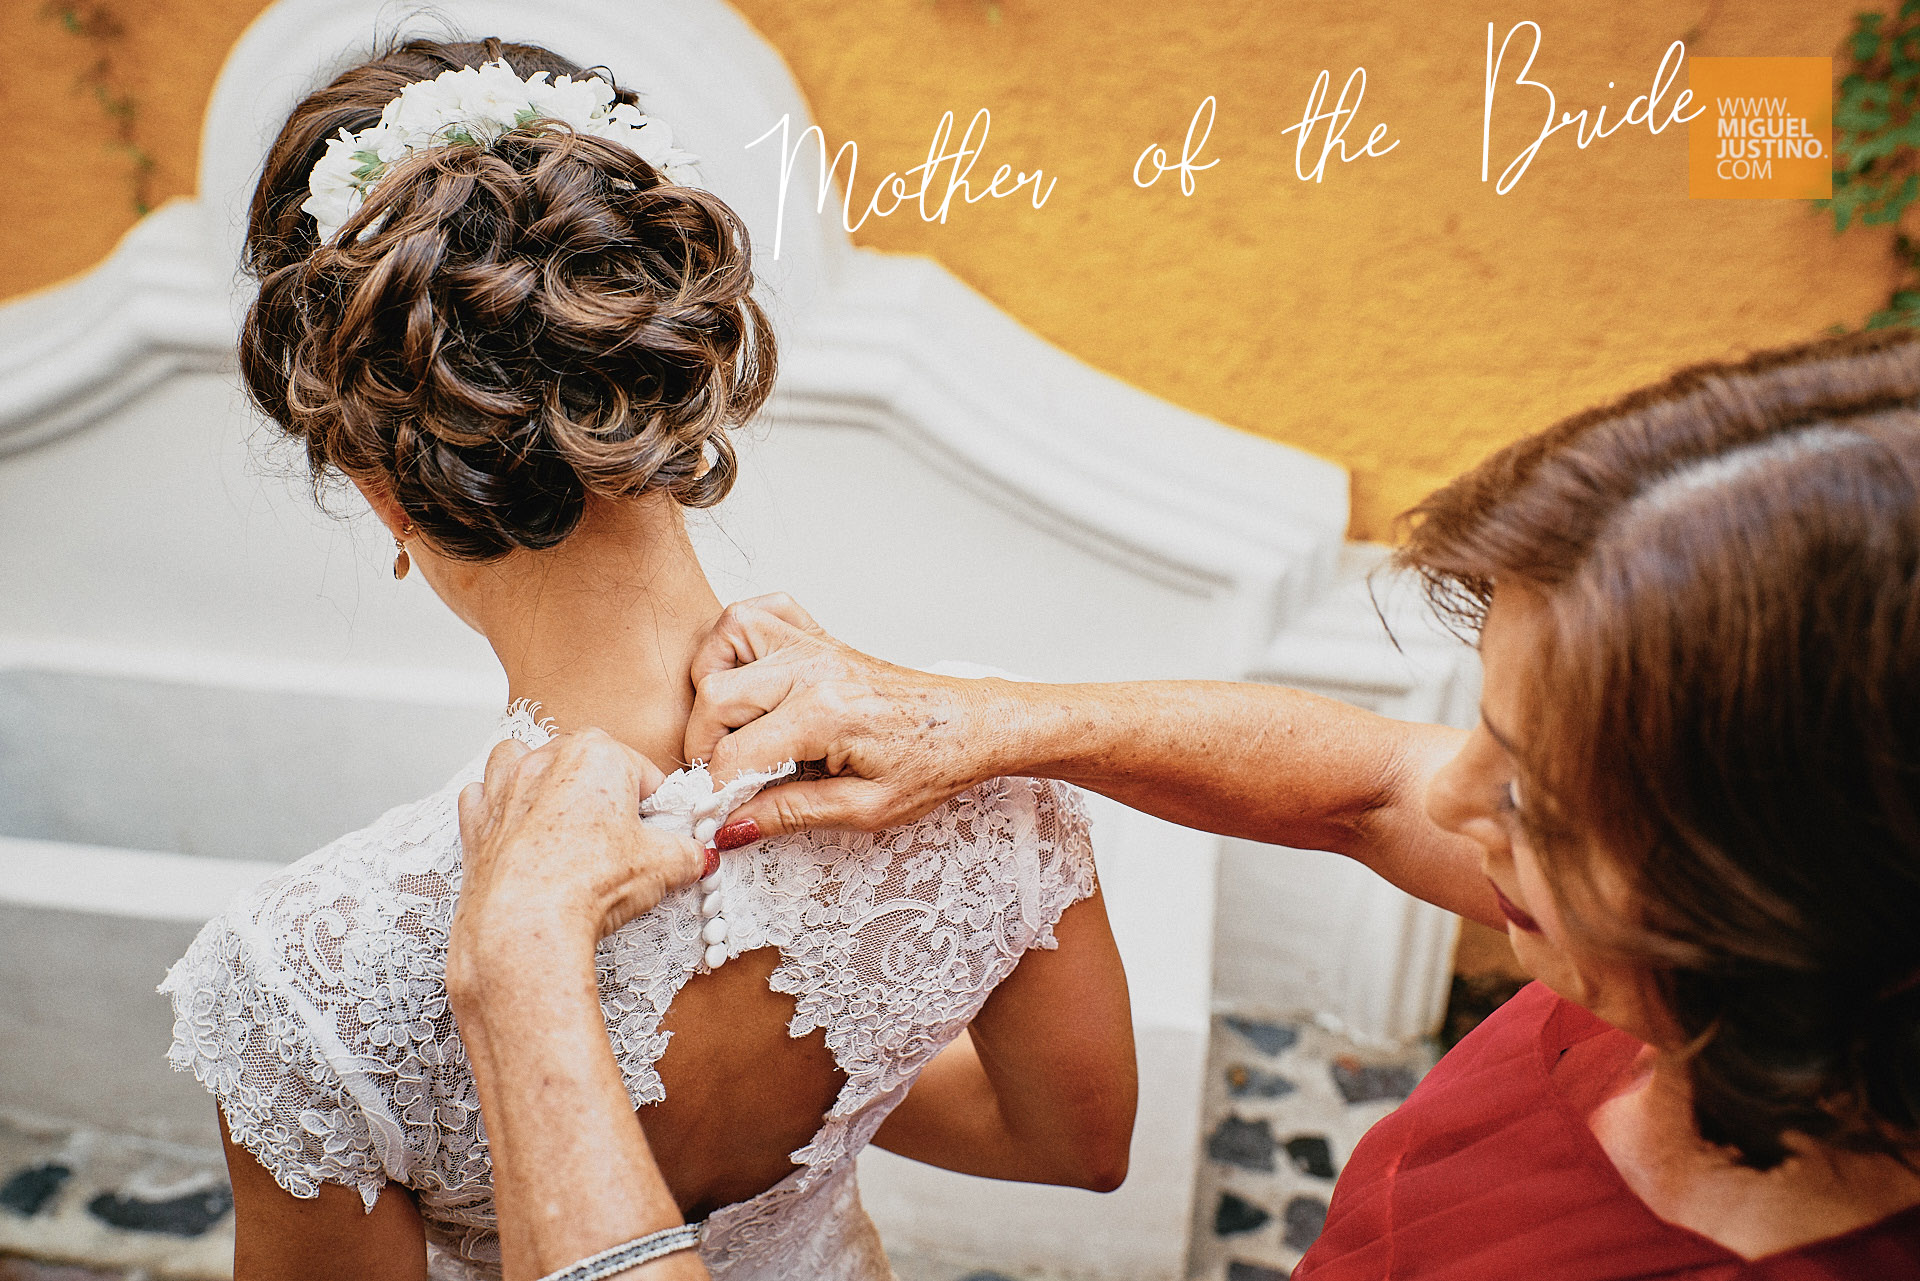 Mother of the Bride helping Bride with dress